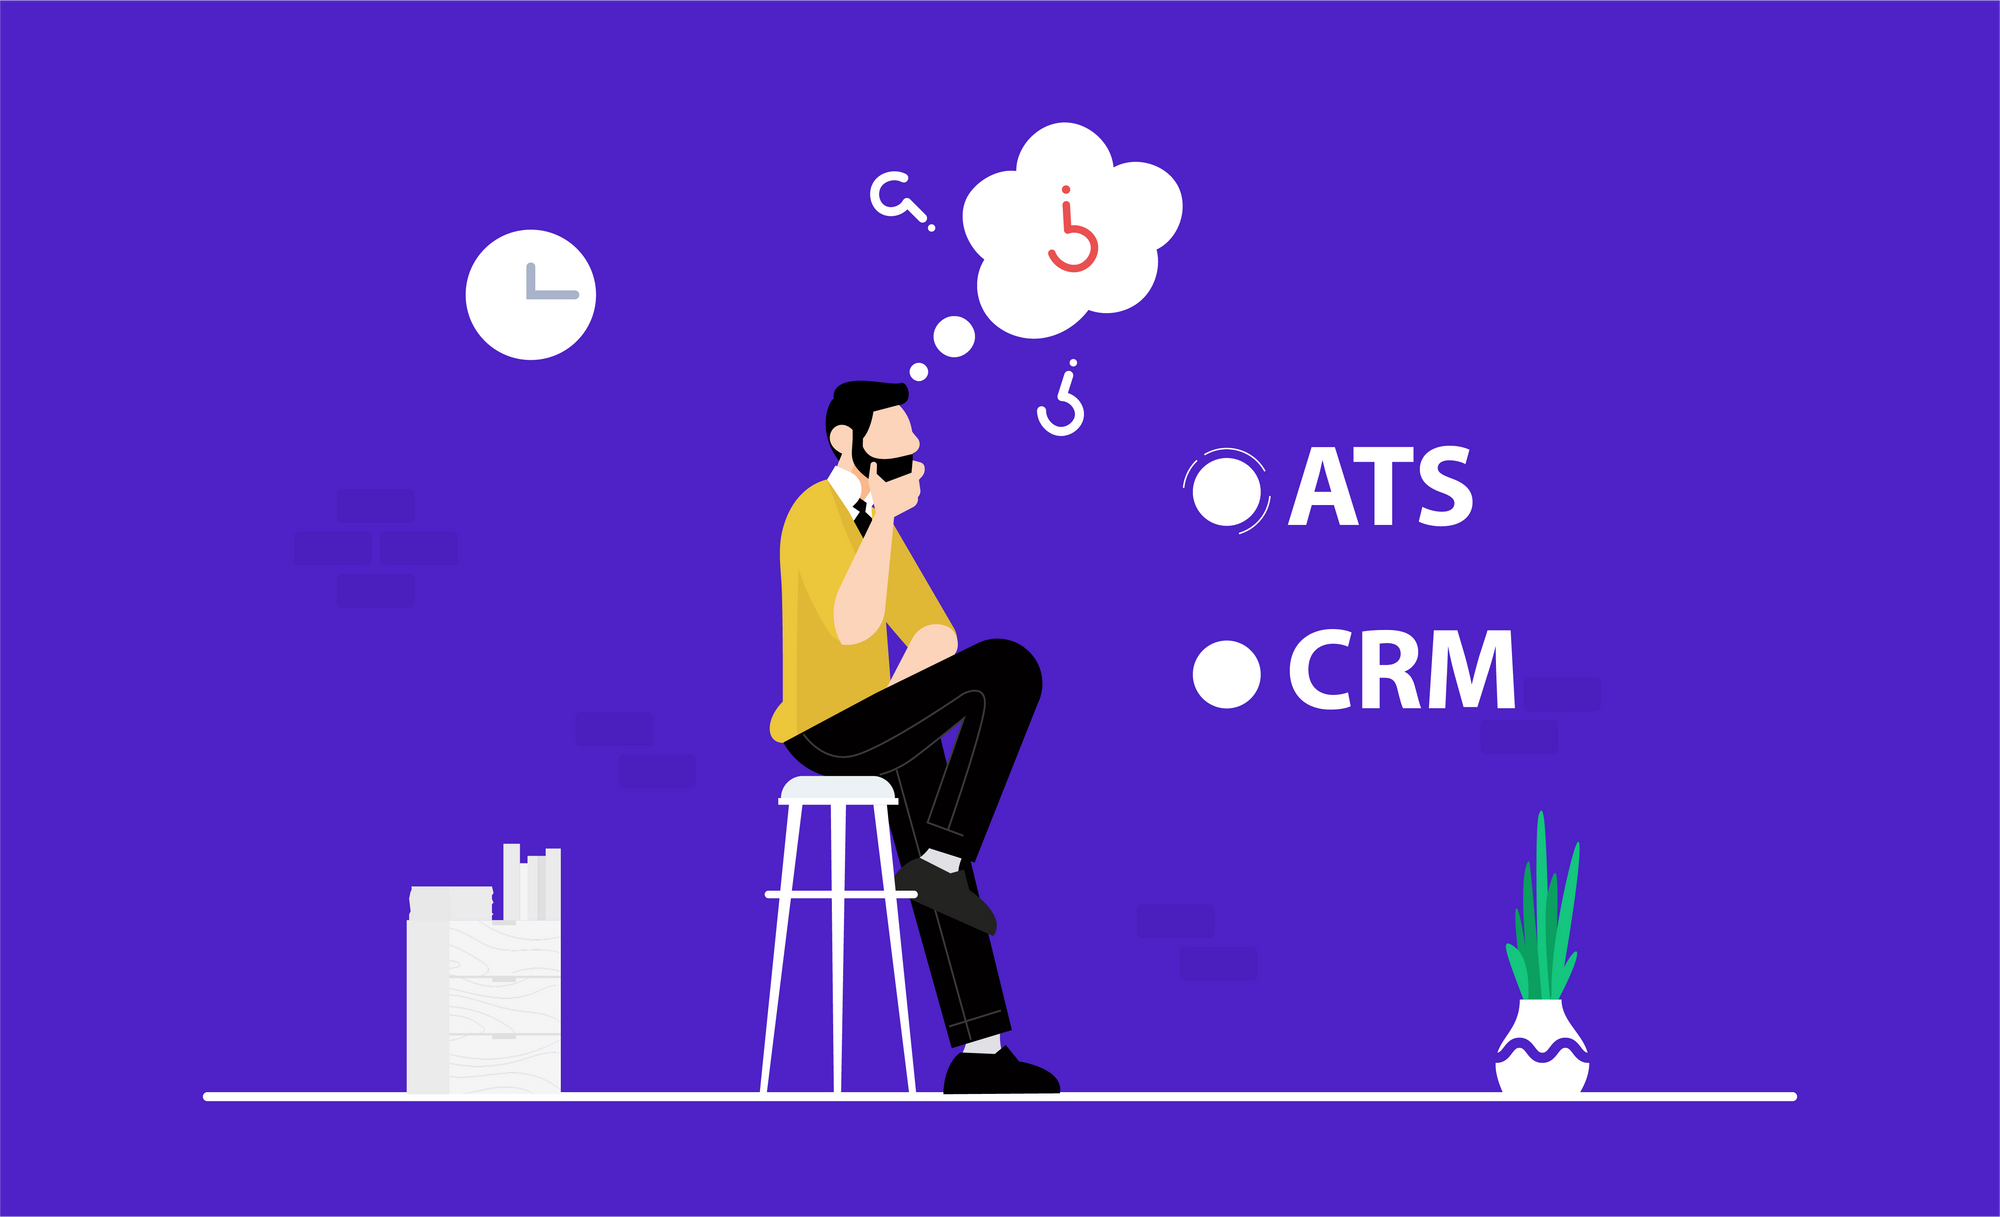 Transform Your Recruiting Business With ATS + CRM